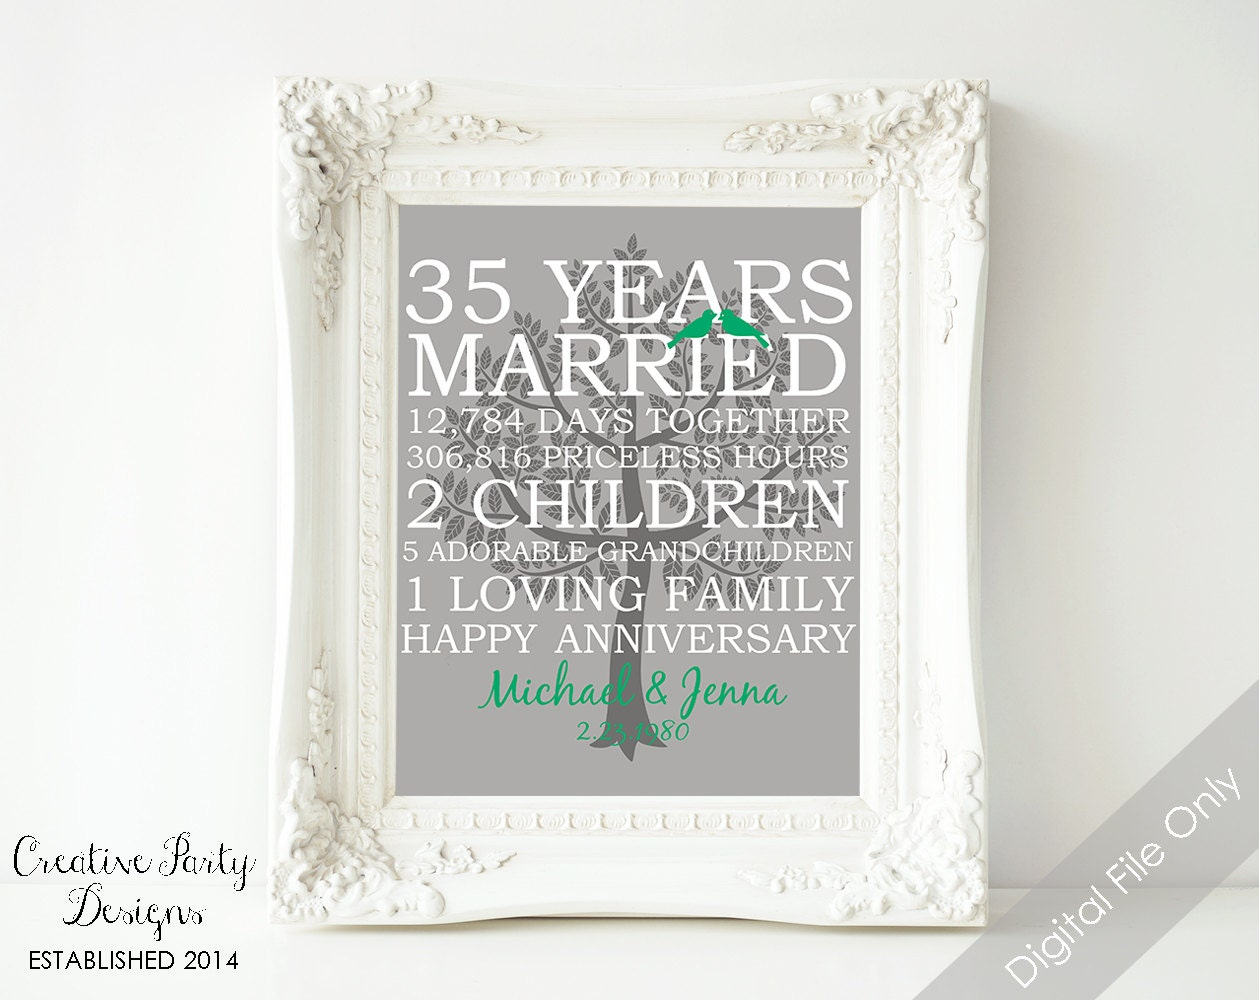 Best Gift For Wedding Anniversary For Parents: 35th Wedding Anniversary Gift 35th Anniversary Print